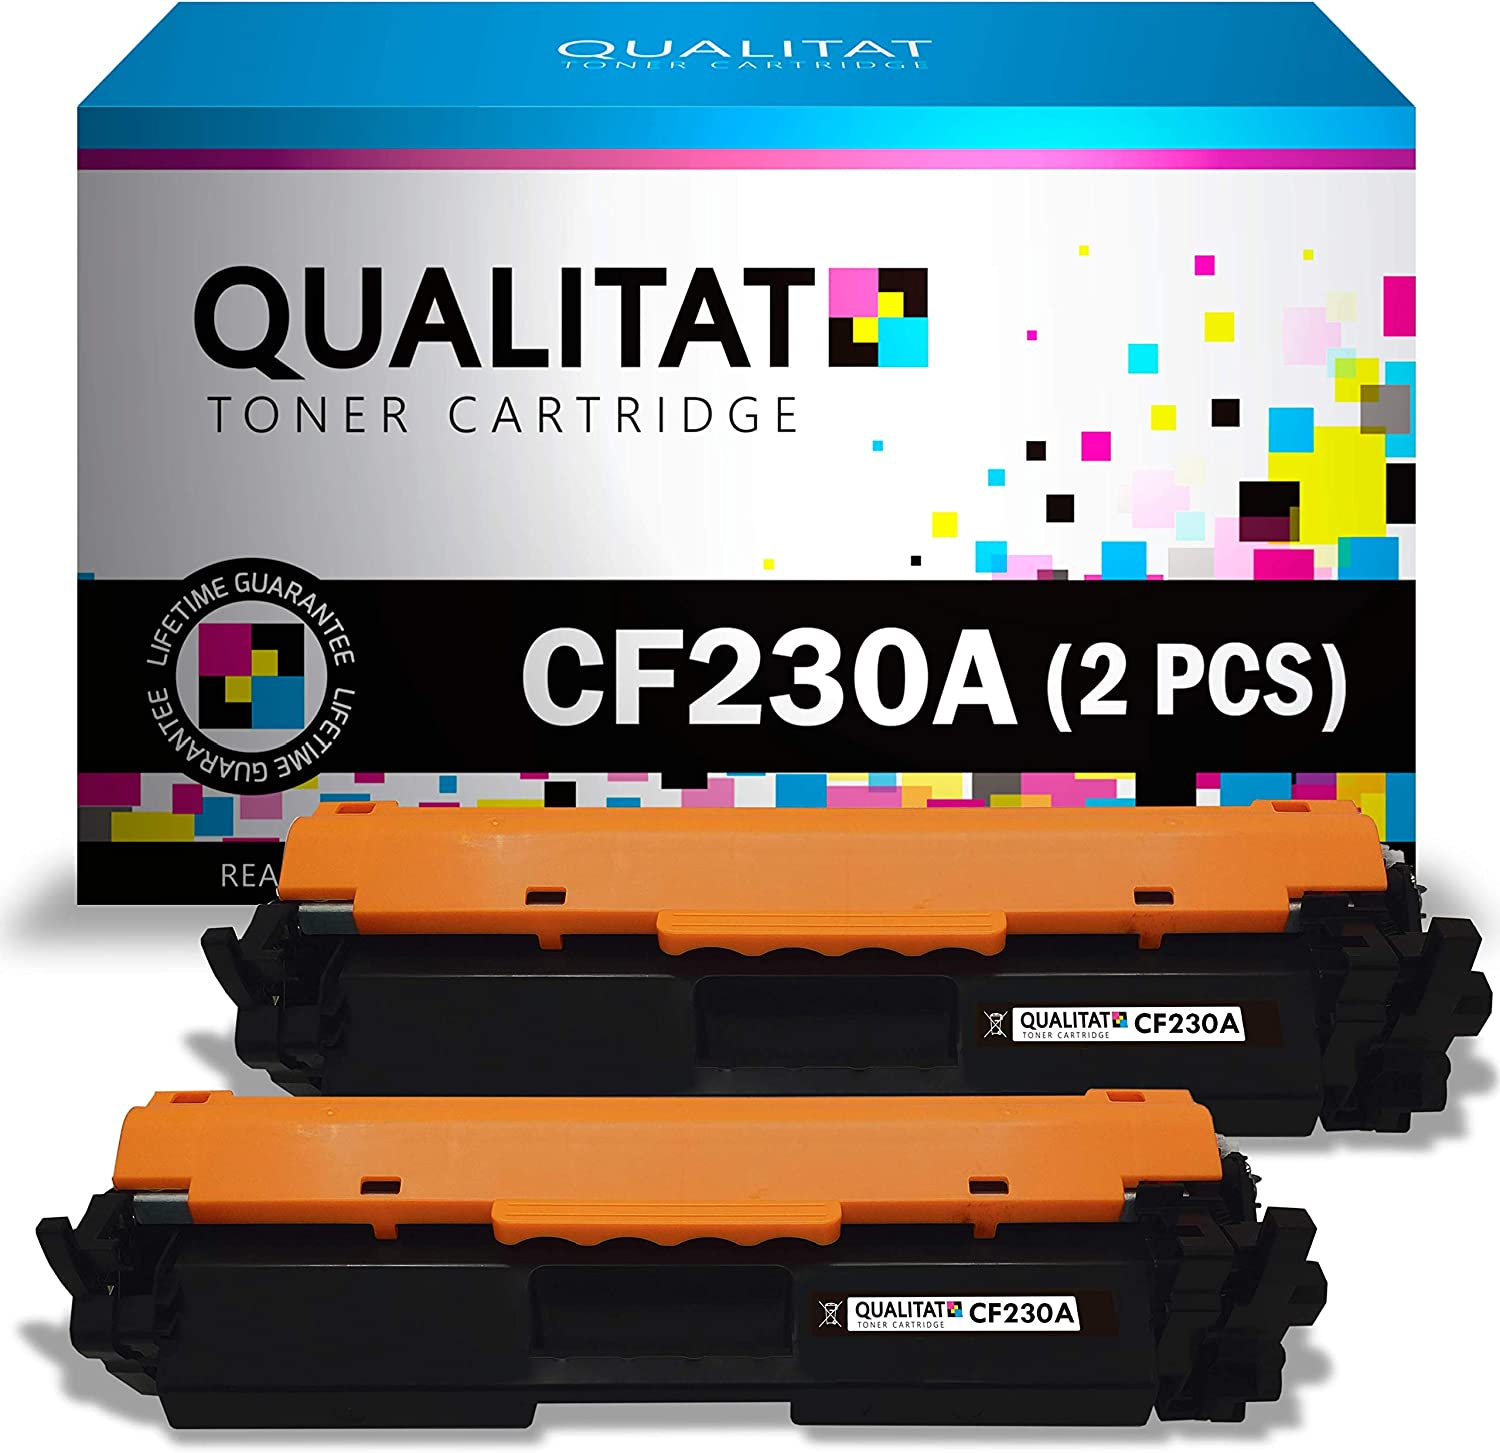 QUALITAT CF230A Toner Cartridge Compatible for HP 30A 30X CF230X 2 Pack Black cartridges for use in Laserjet Pro MFP M203dw M227fdn M227fdw M203dn M203d M227sdn M227 M203 Printers | New 2021 Chip |